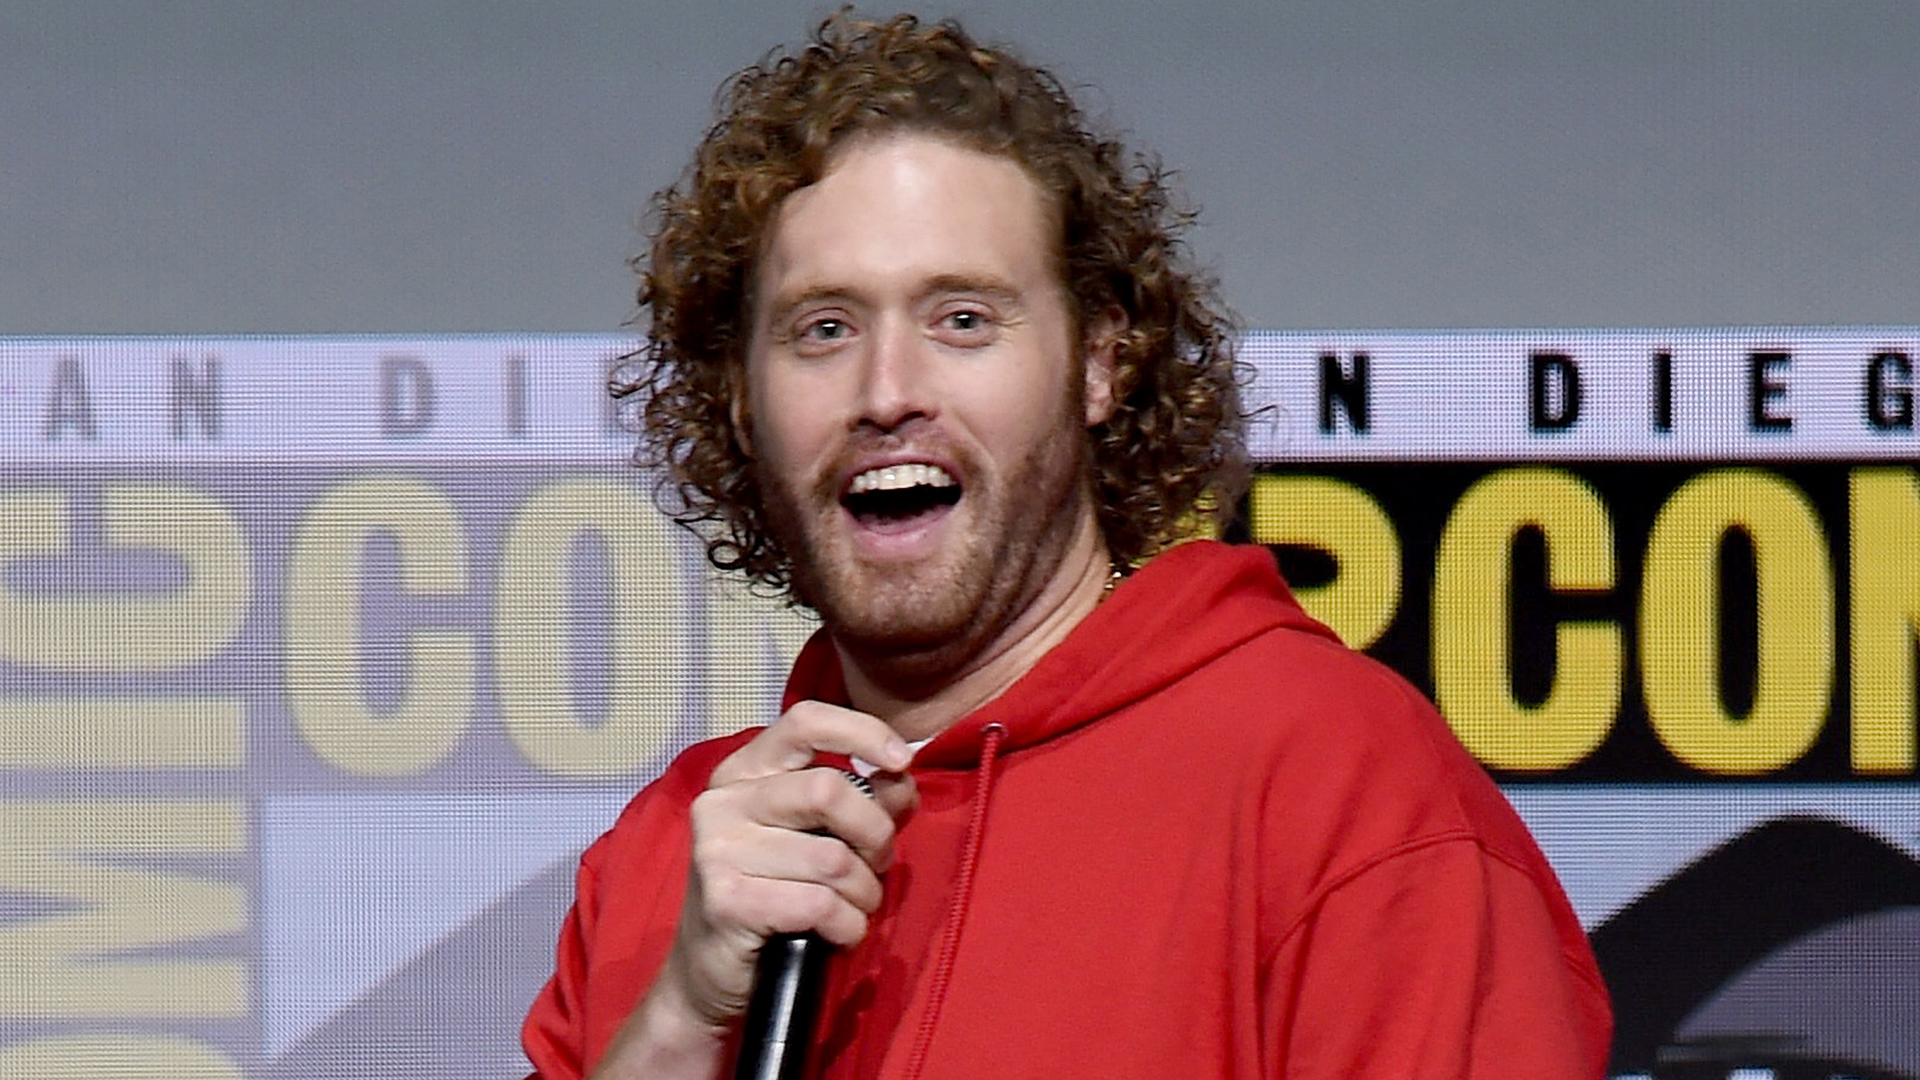 Actor T.J. Miller attends the Warner Bros. Pictures Presentation during Comic-Con International 2017 at San Diego Convention Center on July 22, 2017. (Credit: Kevin Winter/Getty Images)